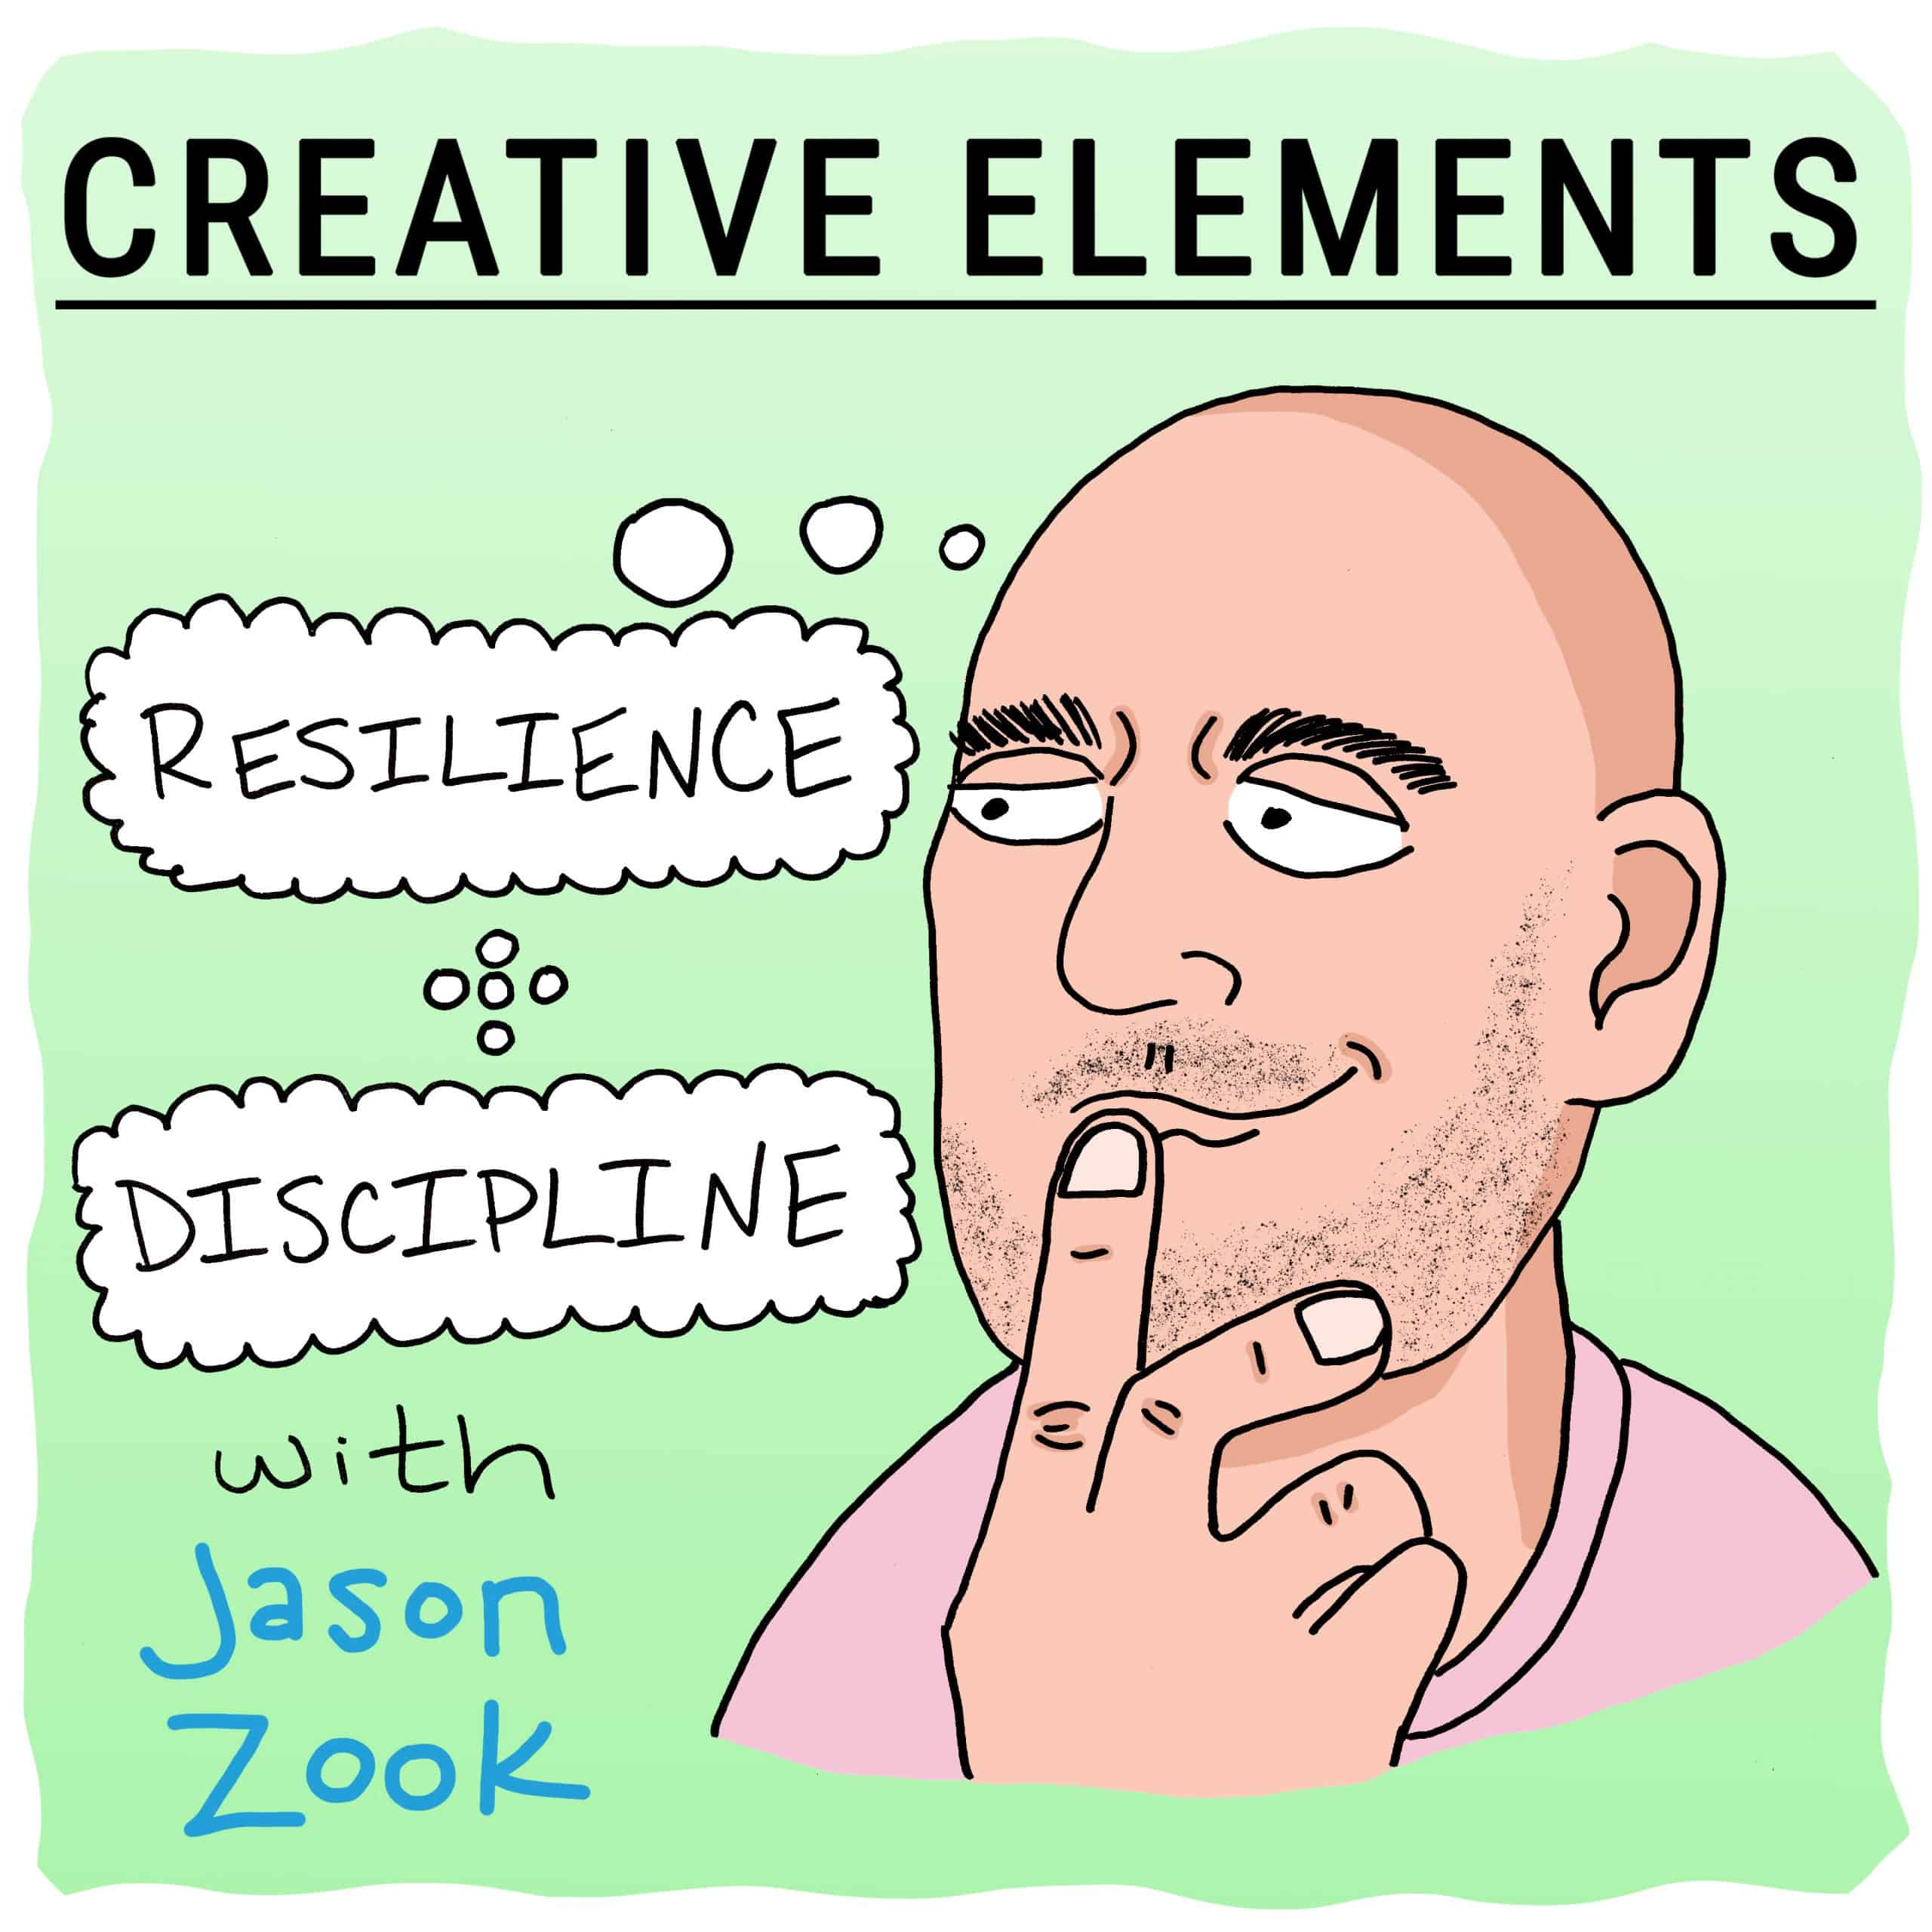 Jason Zook on Creative Elements